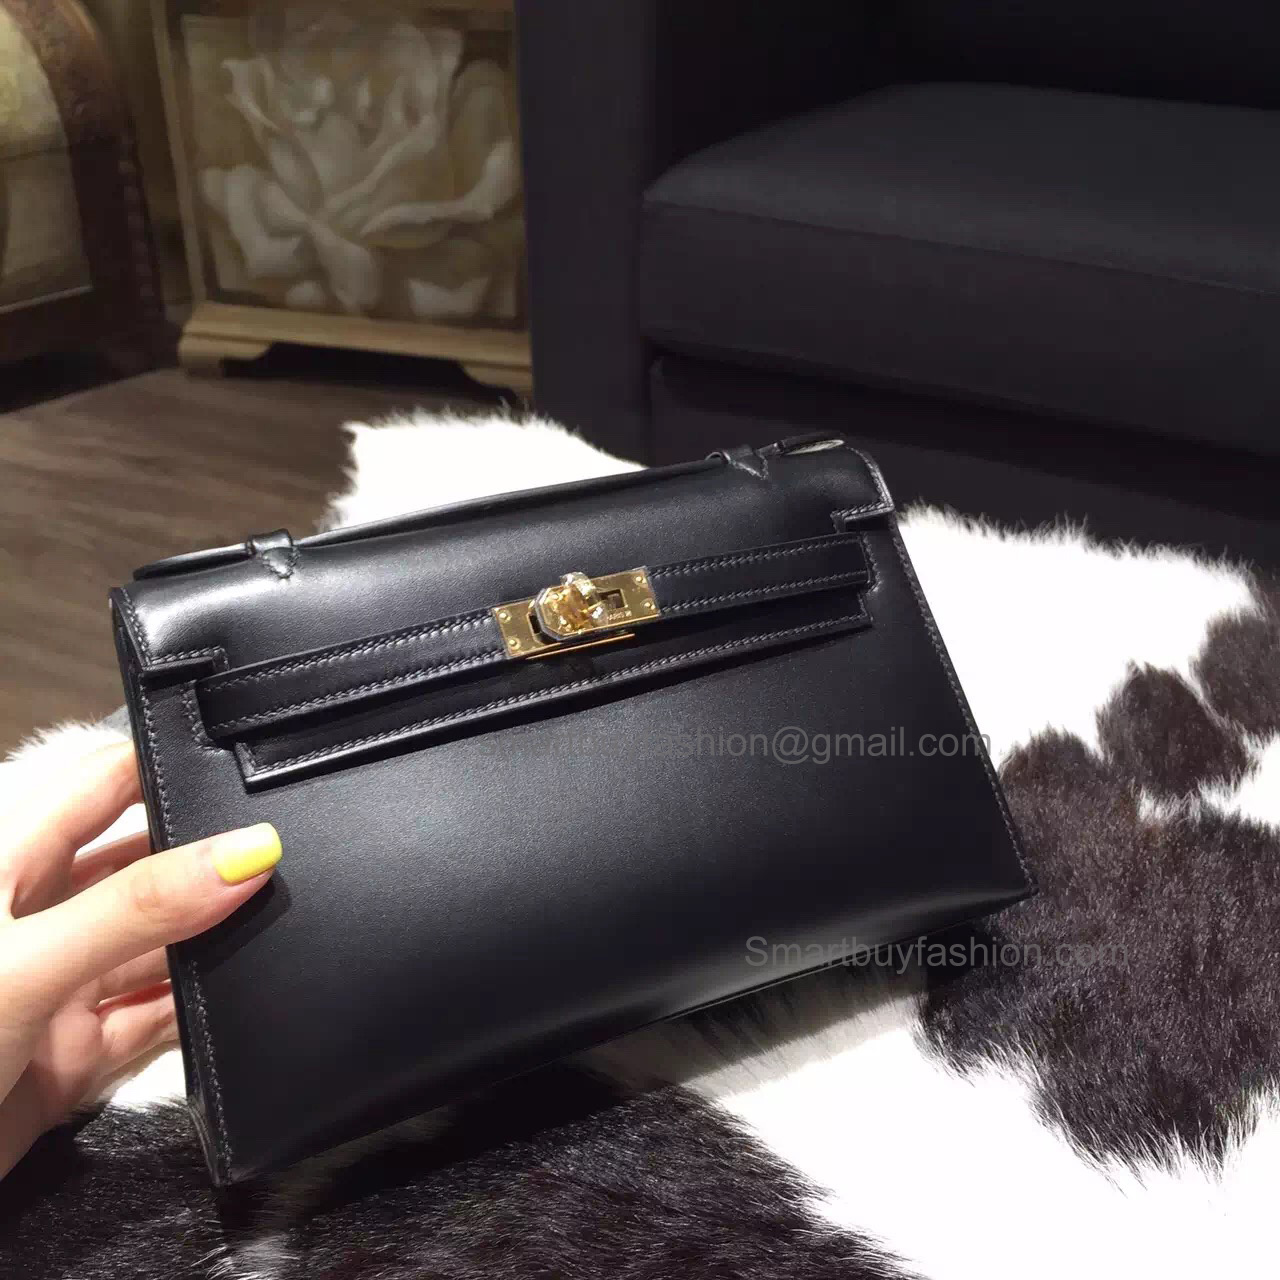 09329d61a3a6 Handmade Hermes Mini Kelly 22 Pochette Copy Bag in ck89 Noir Box Calfskin  GHW